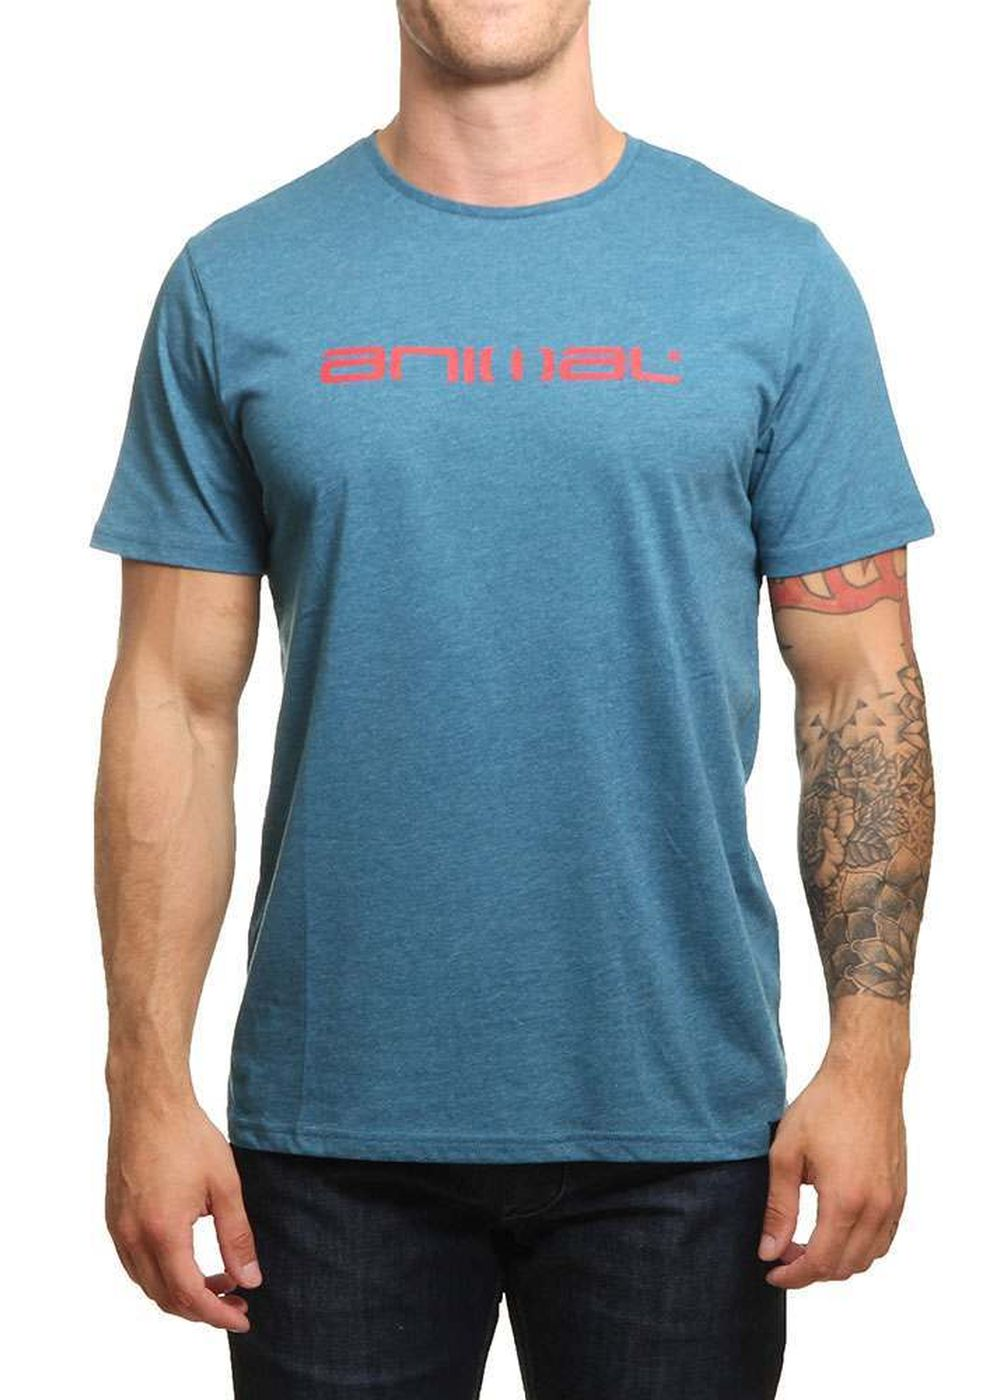 animal-marrly-tee-lyons-blue-marl